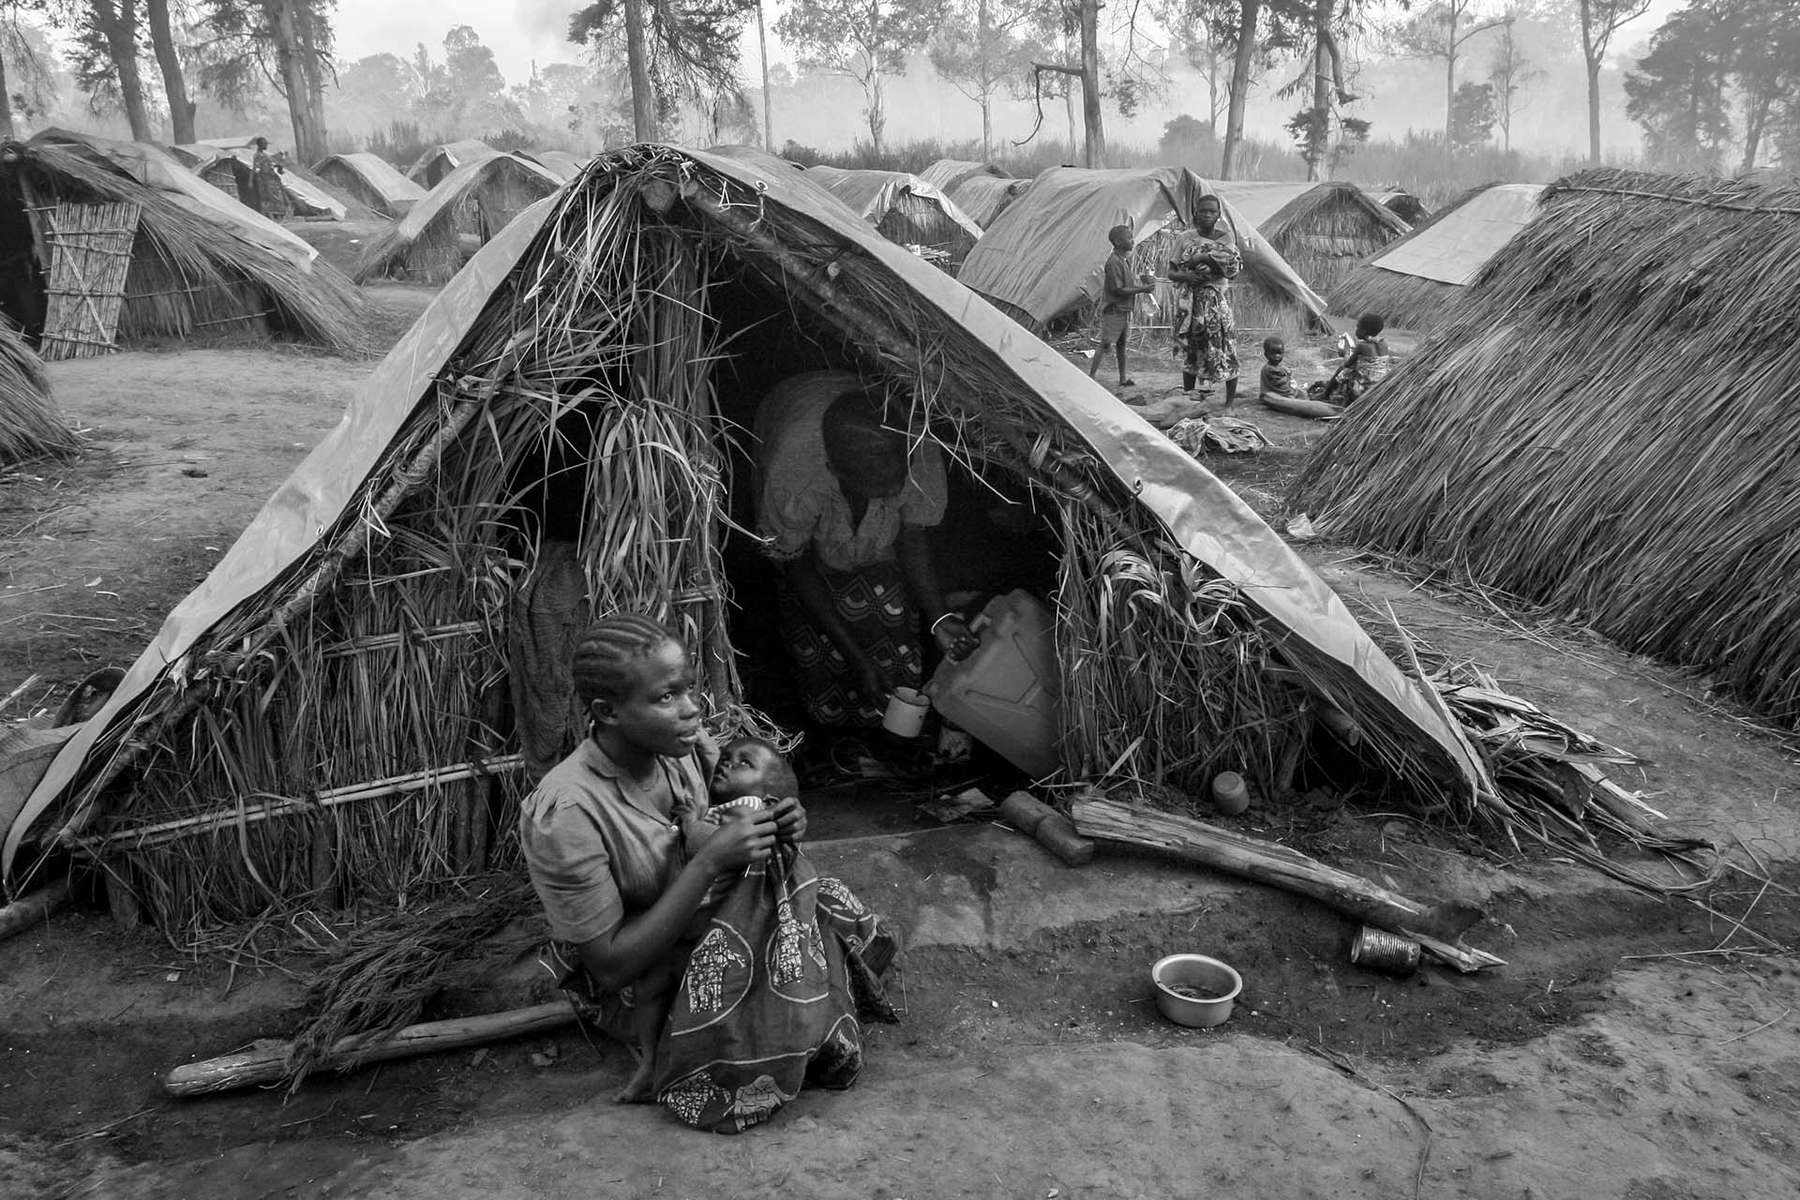 IDP camp in the Village of Gety, 60km southwest of Bunia, regional capital of Ituri region in eastern DR Congo.